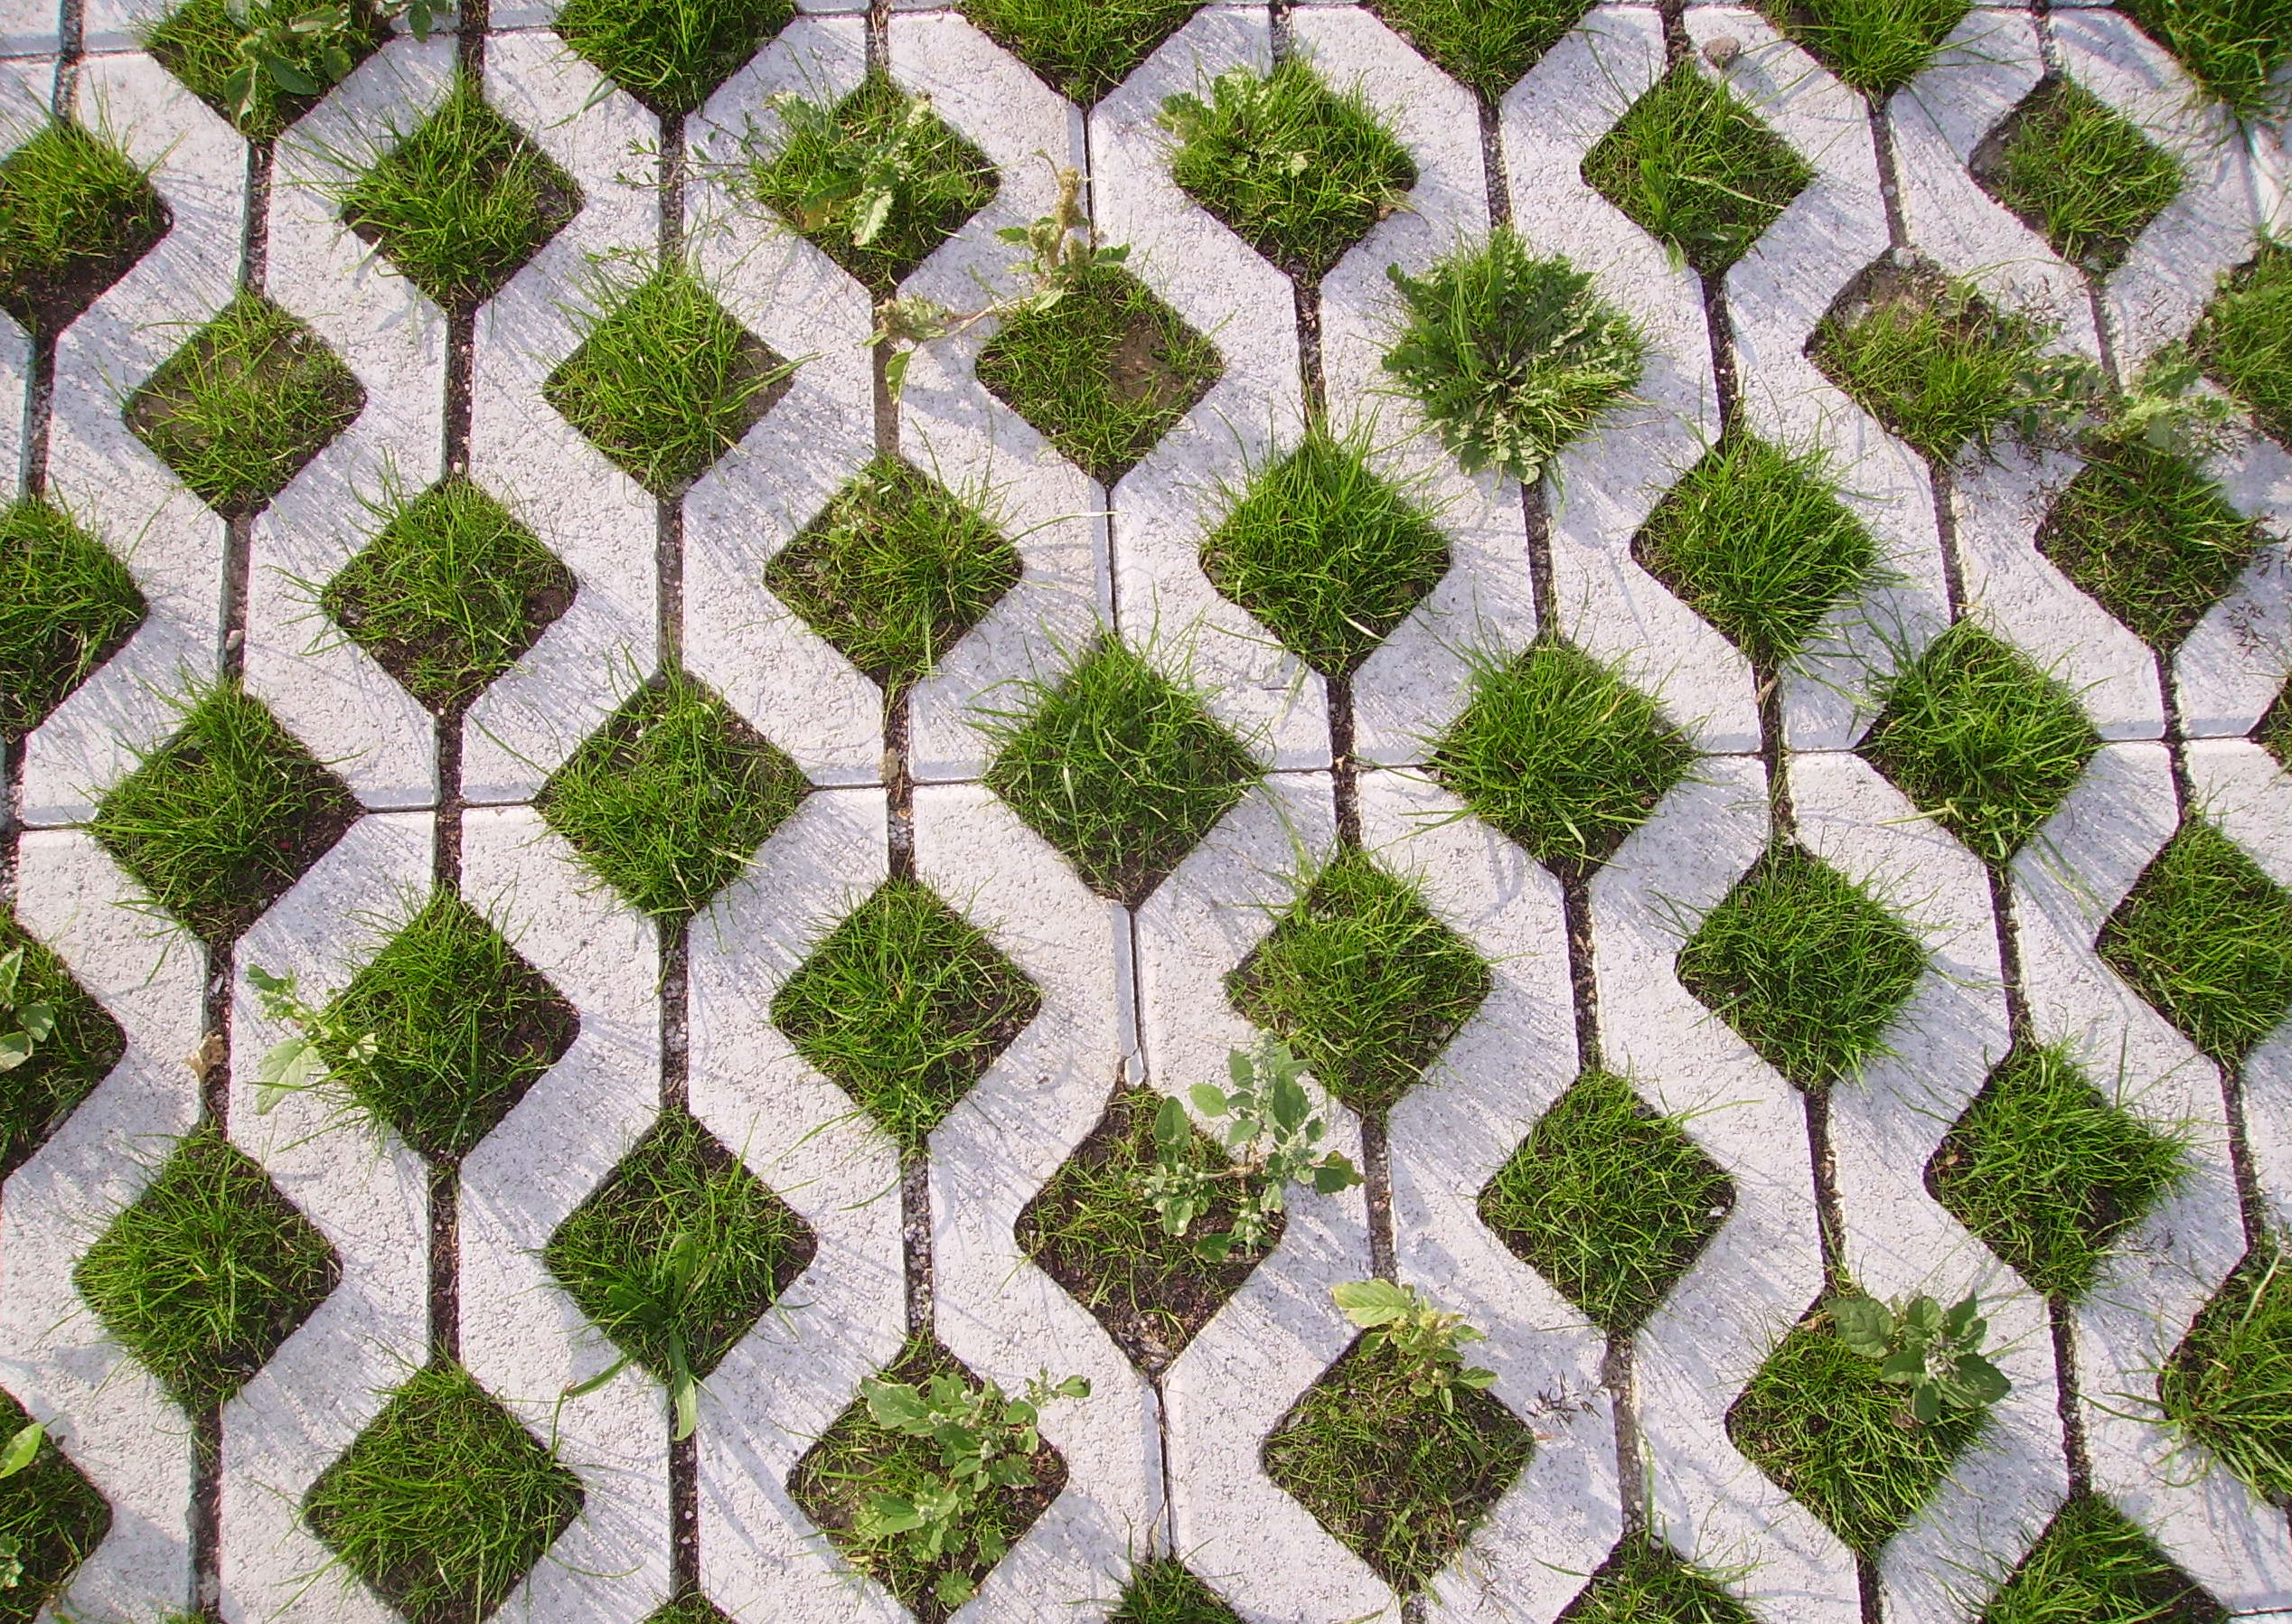 Concrete pavers with holes made in them to allow grass to grow through them.  About fifty percent concrete is visible and the remainder is grass.  Each paver is zig zag shaped to create grass squares that are about ten centimeters wide.